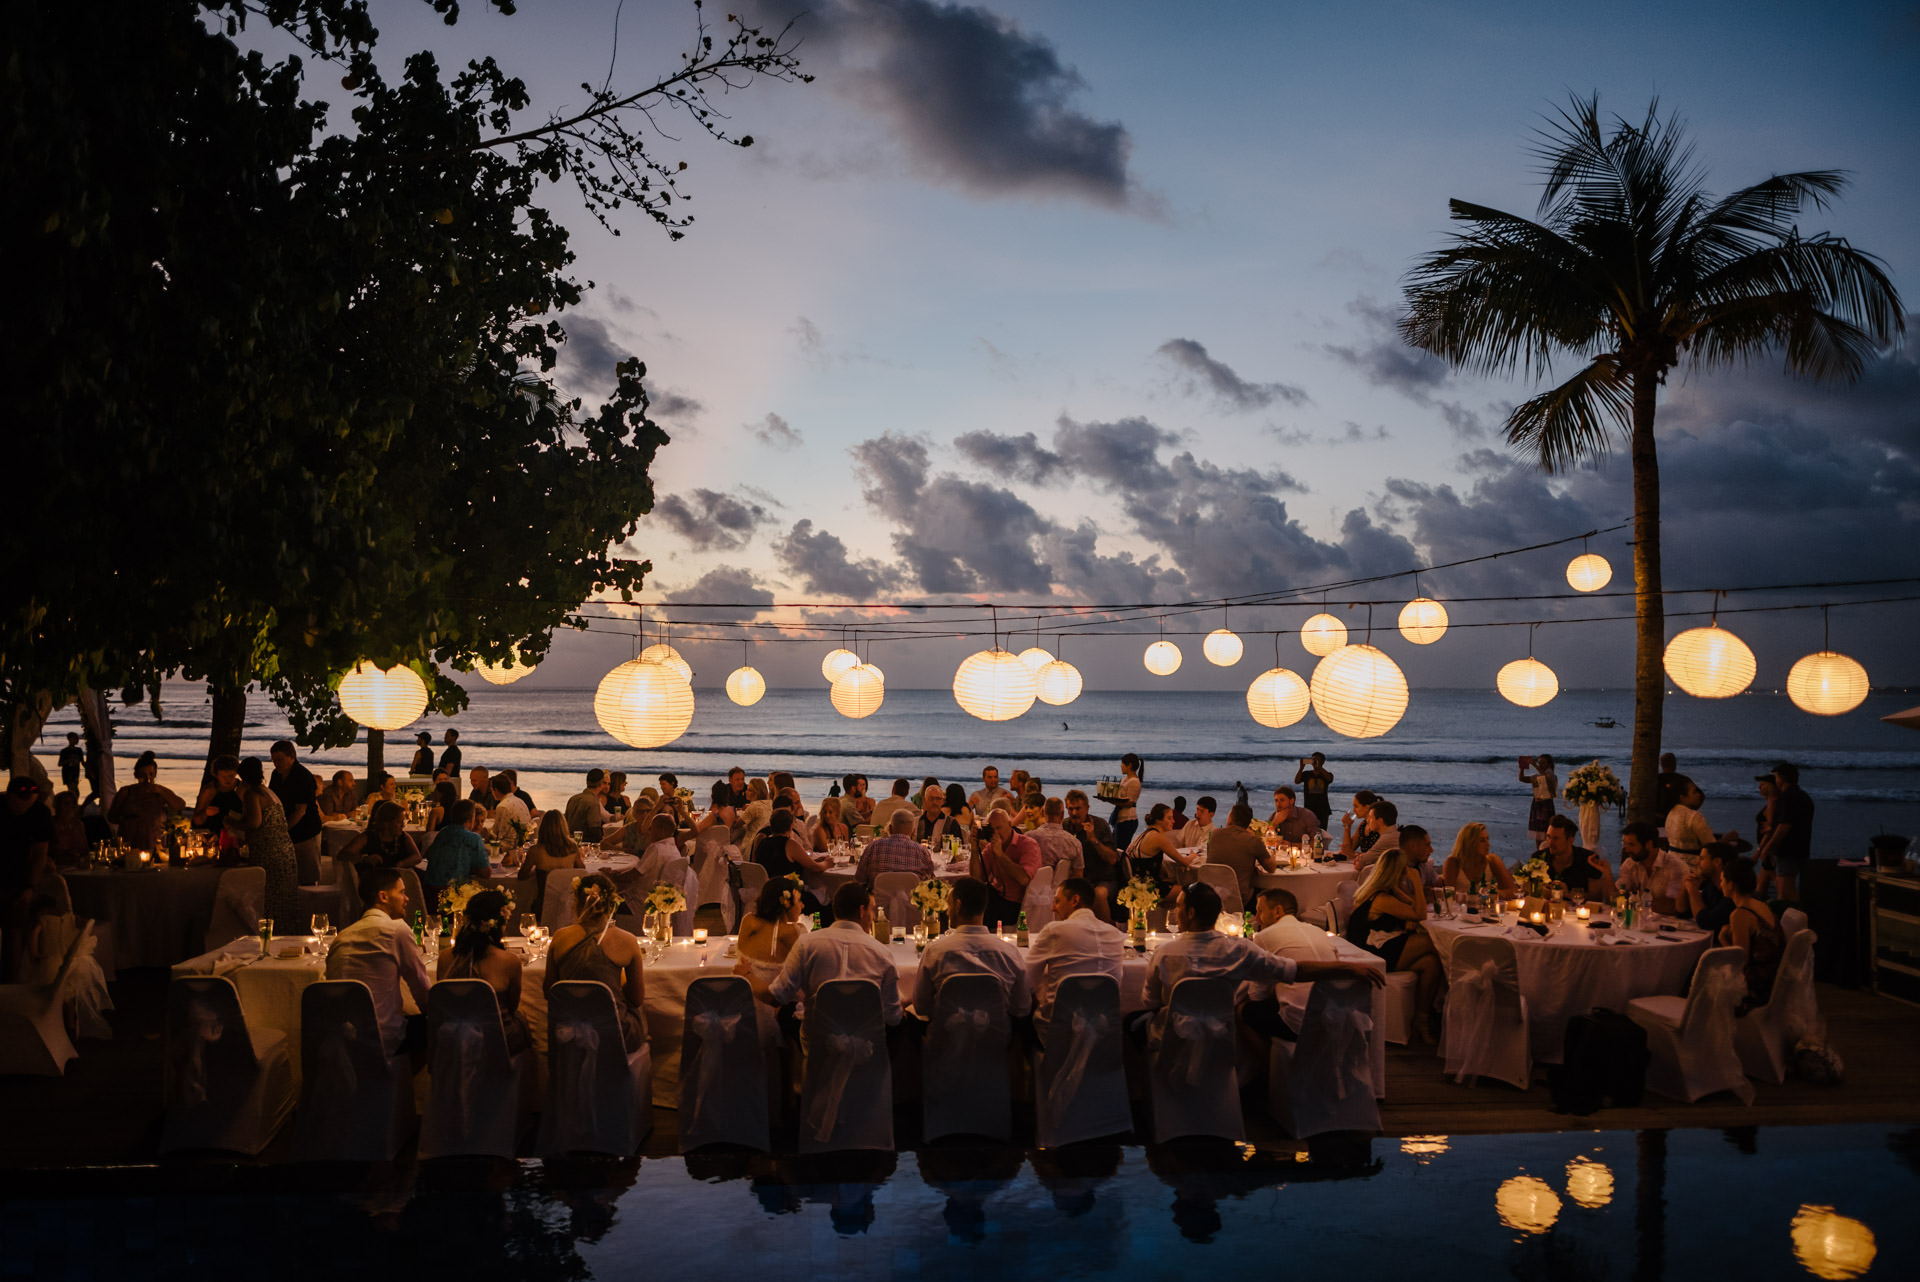 Bali-Travel-Photography-the-official-photographers_TOP_7964